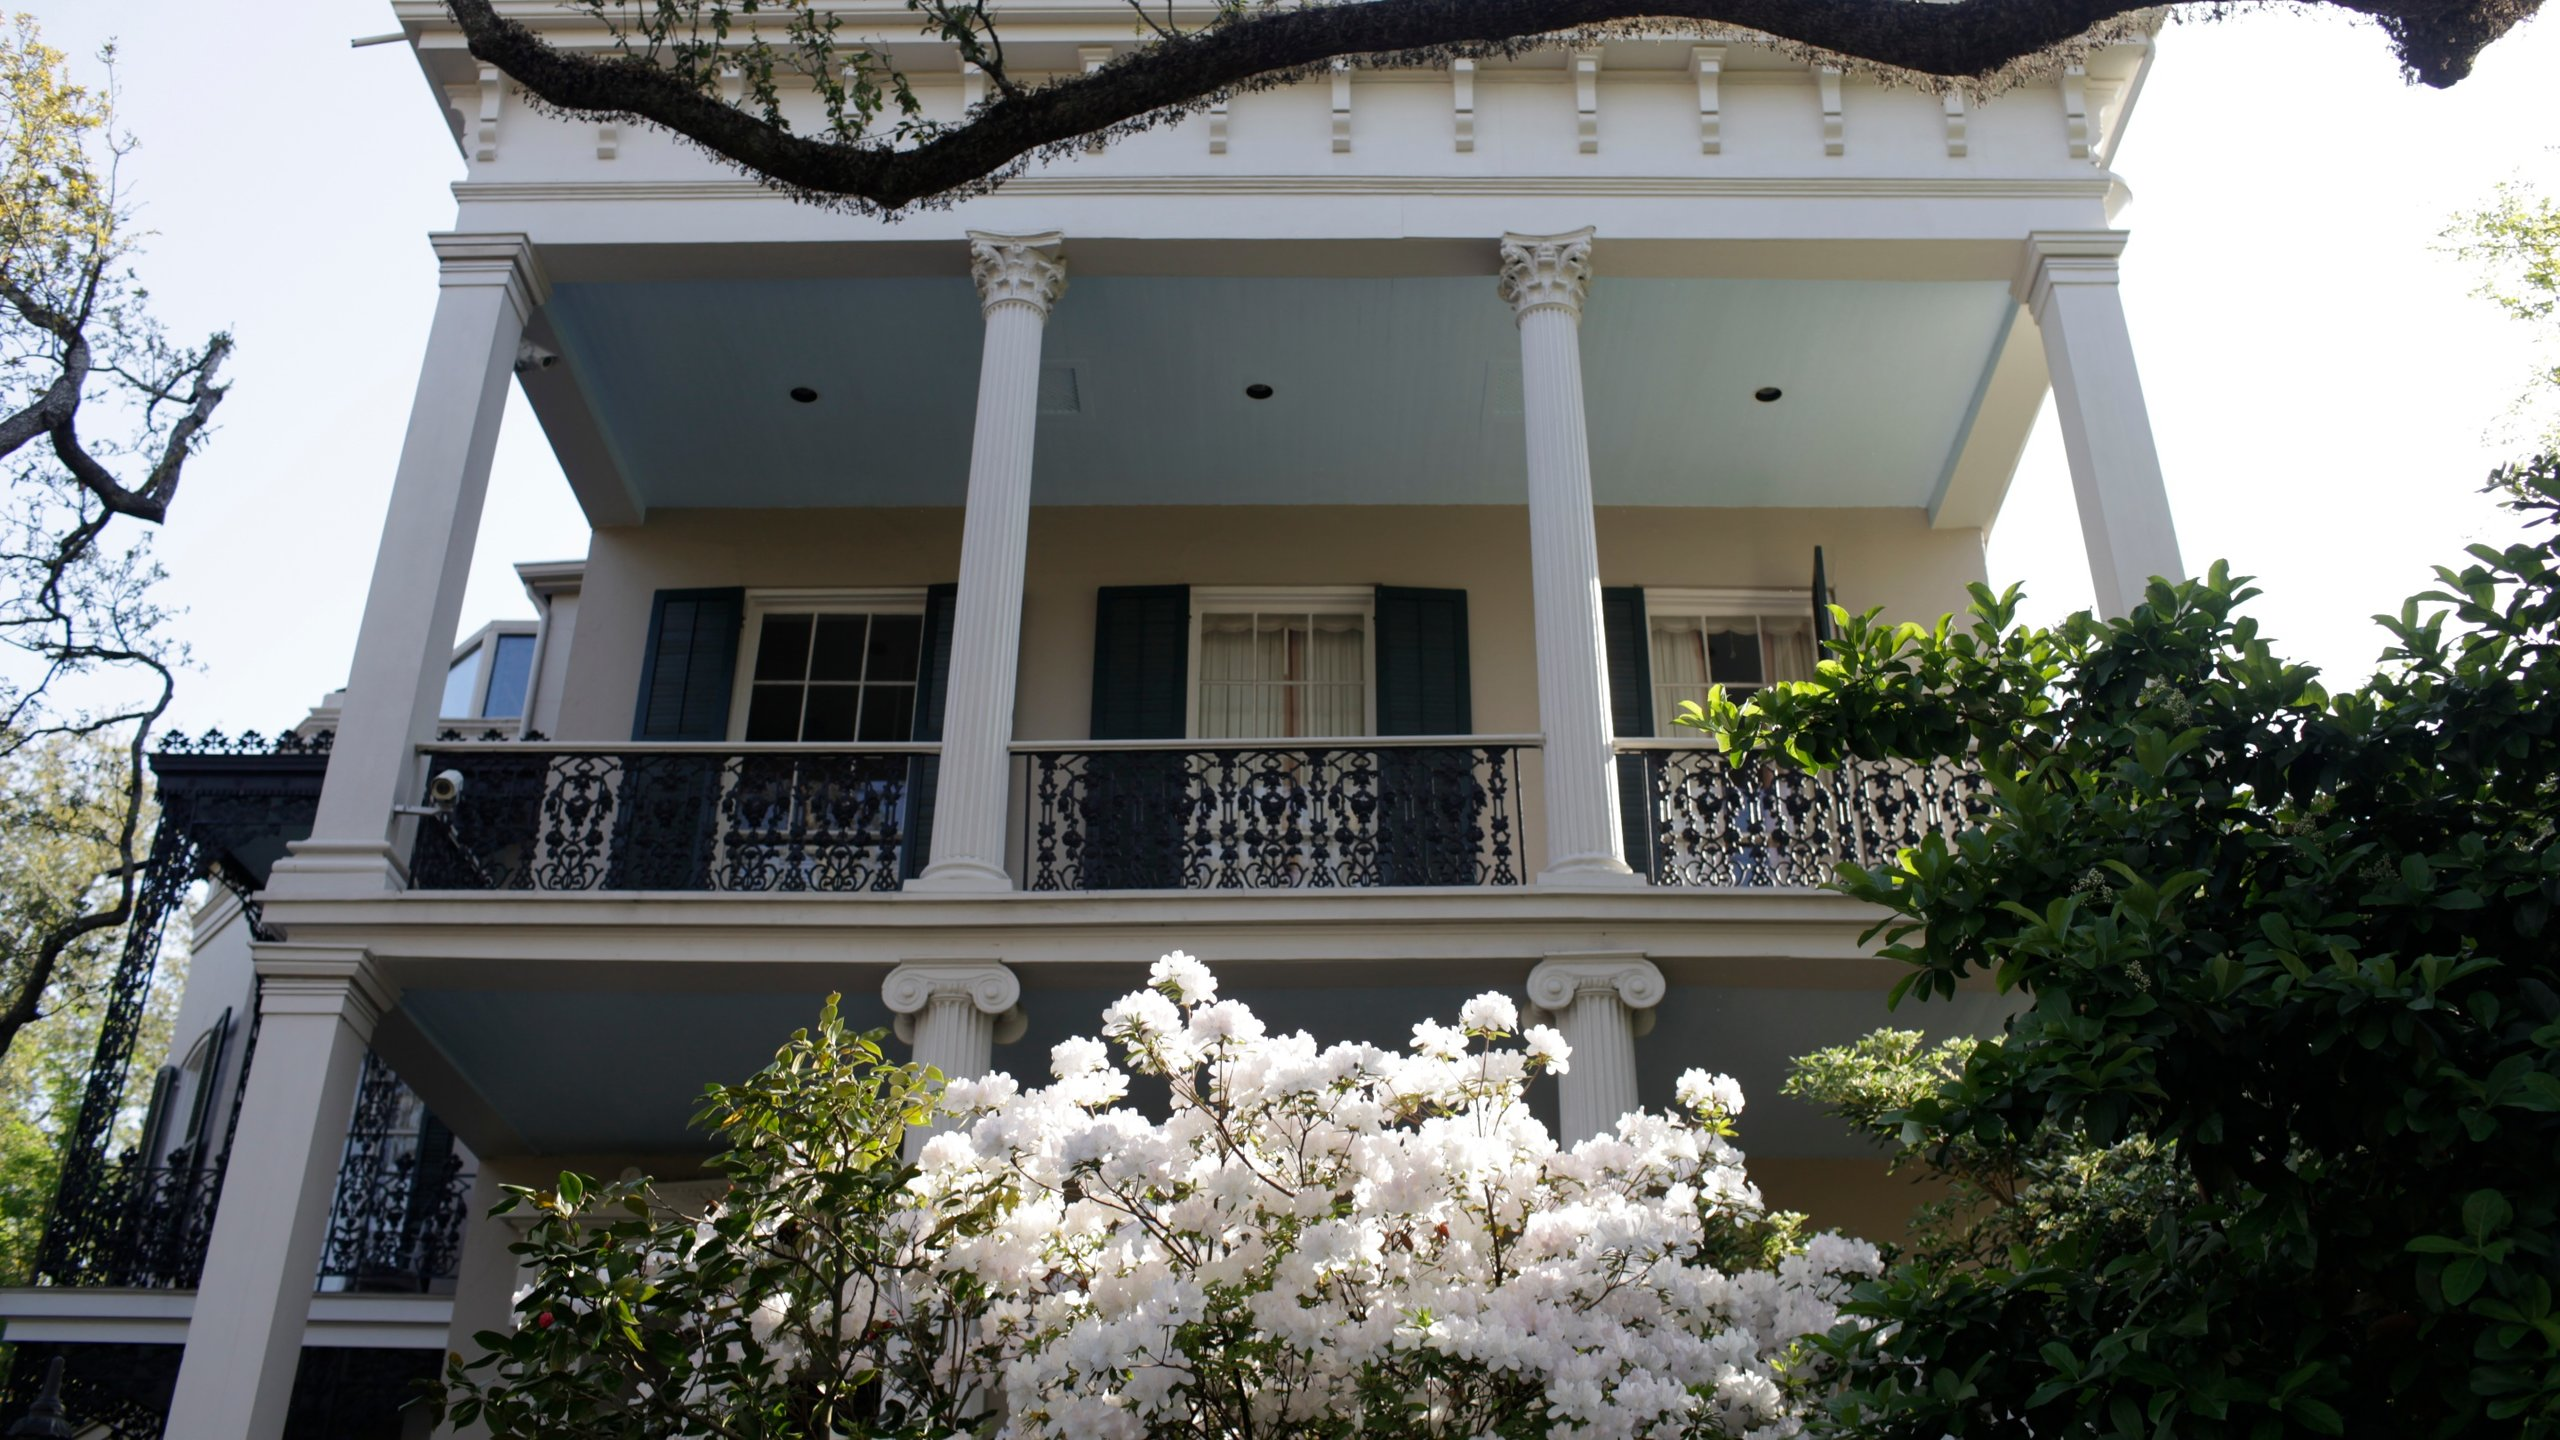 10 best historic hotels in garden district for 2019 expedia - Hotels near garden district new orleans ...